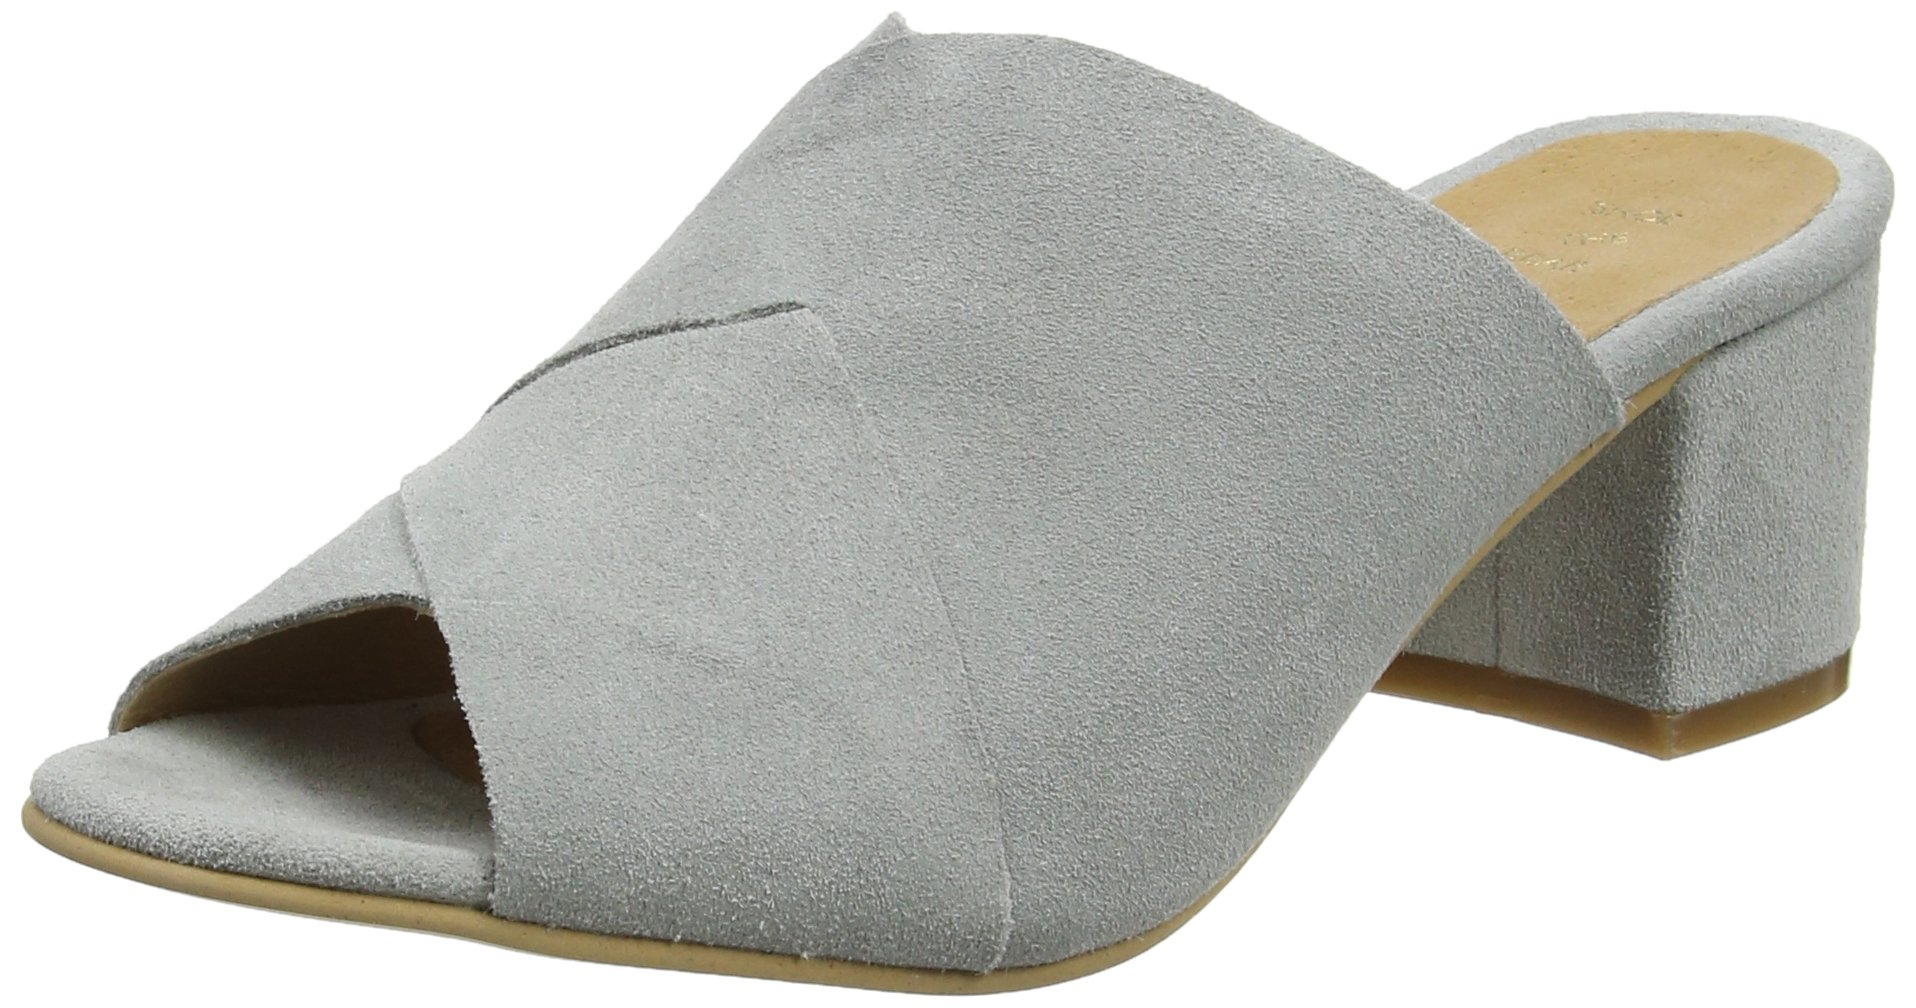 Ouvert SSandales Eu Shoe FemmeGrisgrey40 Marry Bear The Bout reCodBWx